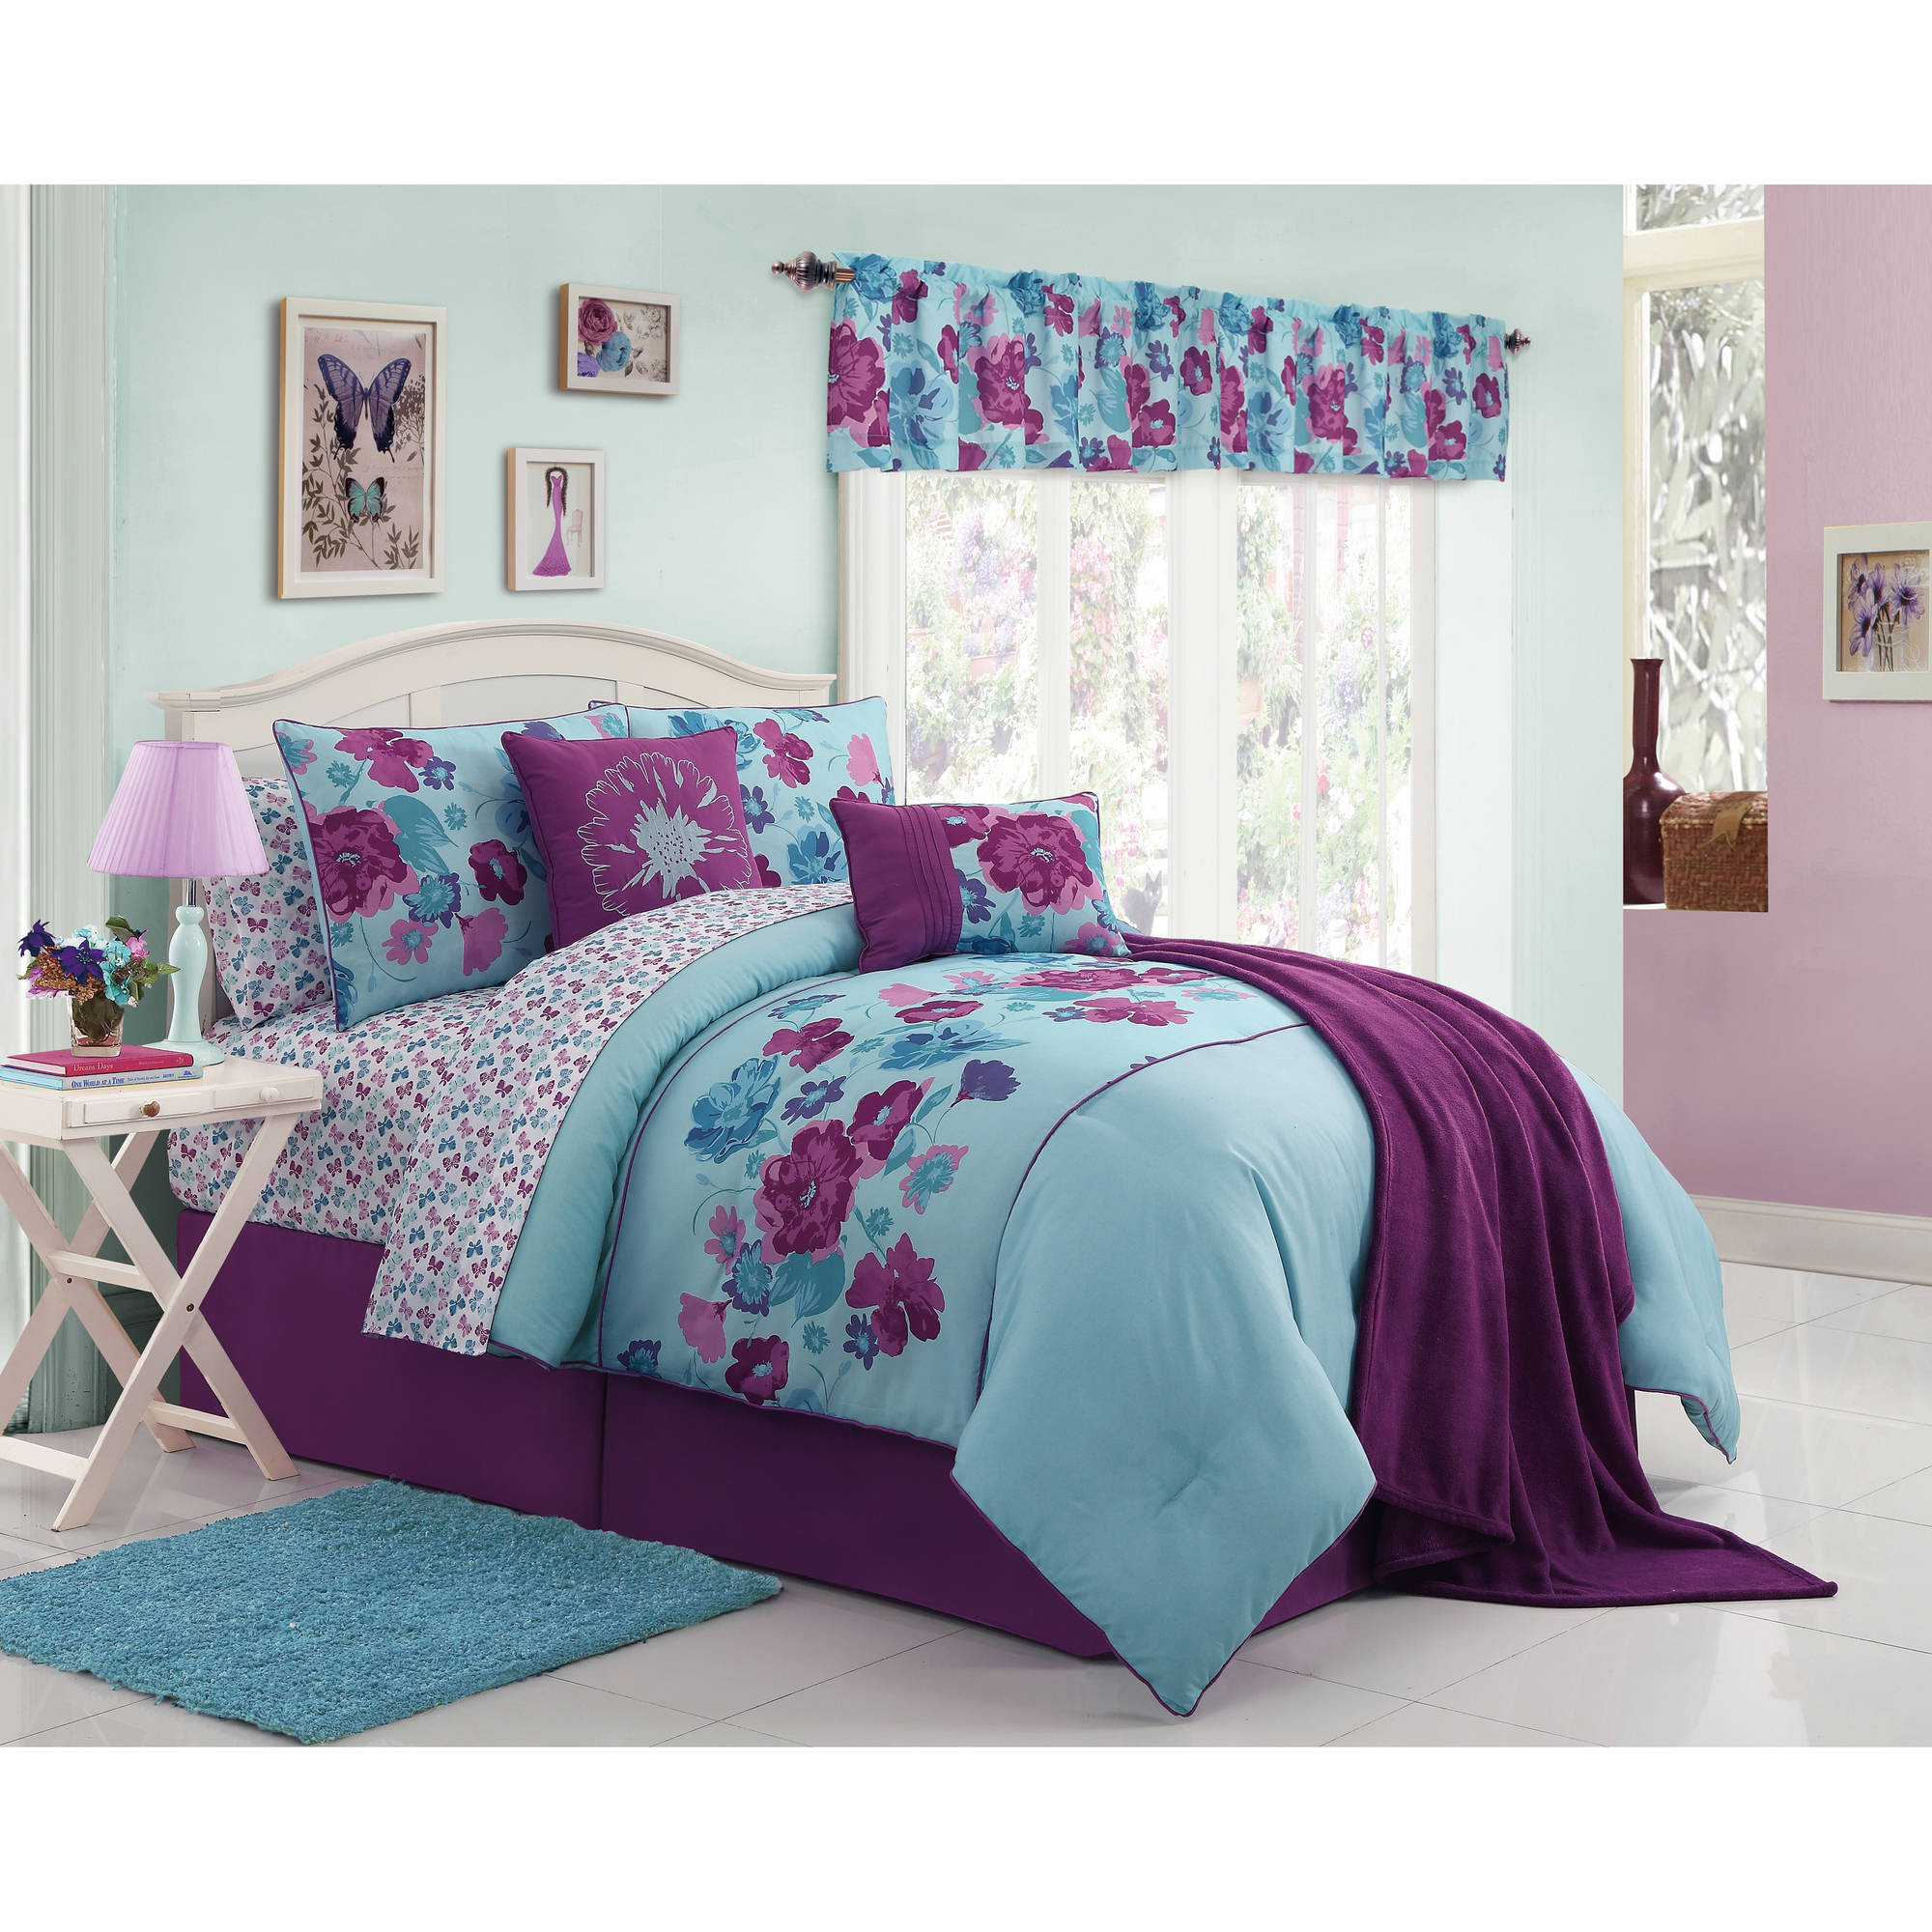 VCNY Home Lilian 11 Piece Microfiber Bedding Comforter Set